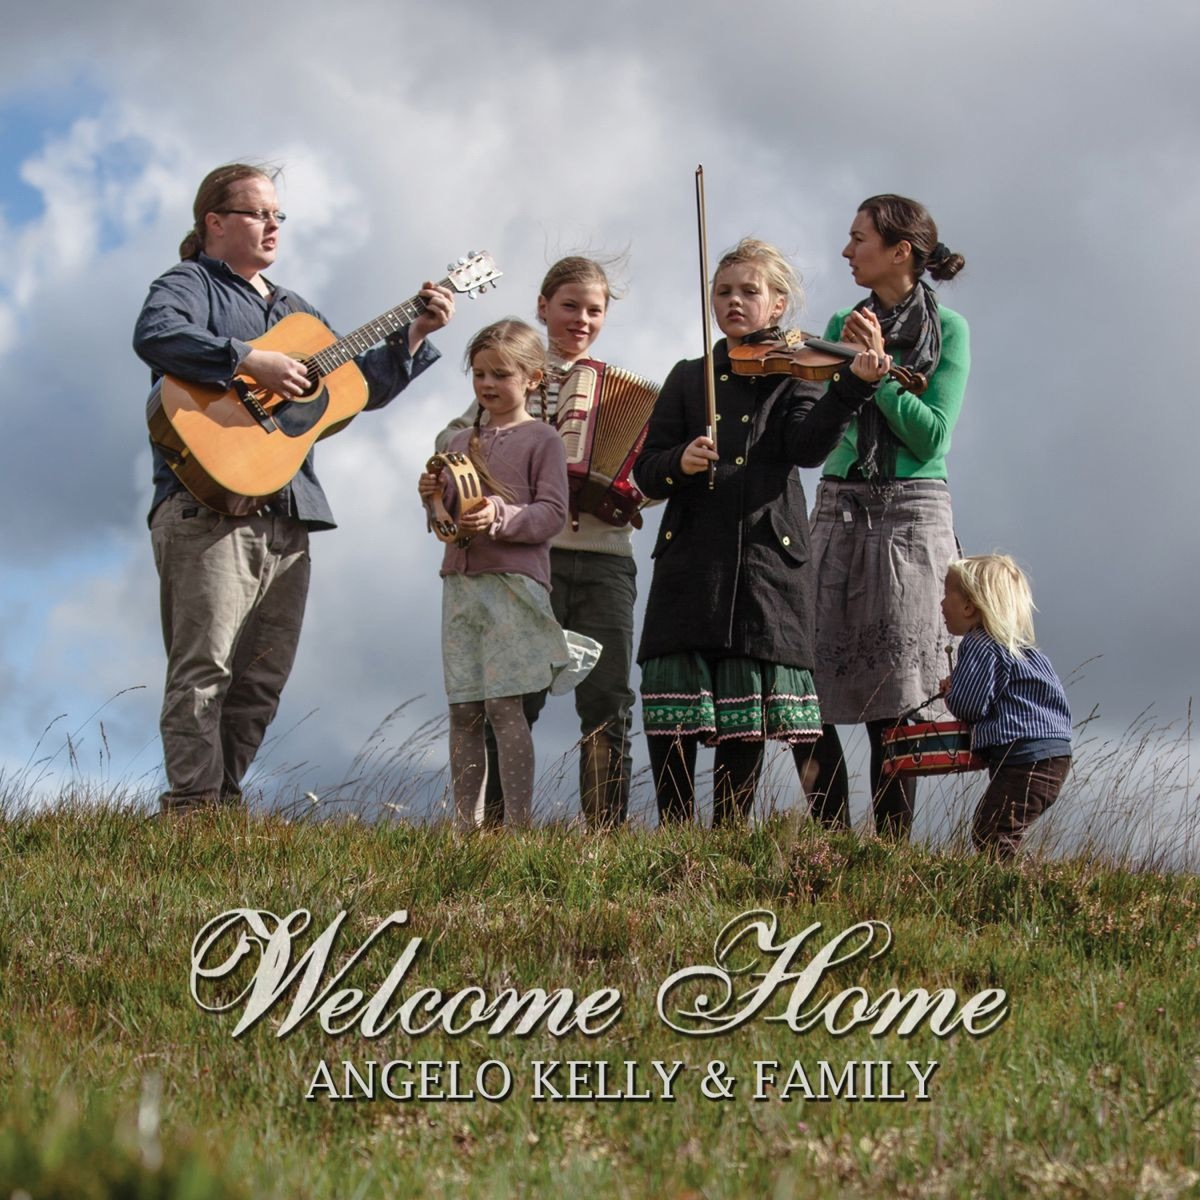 Welcome Home Angelo Kelly CD cover